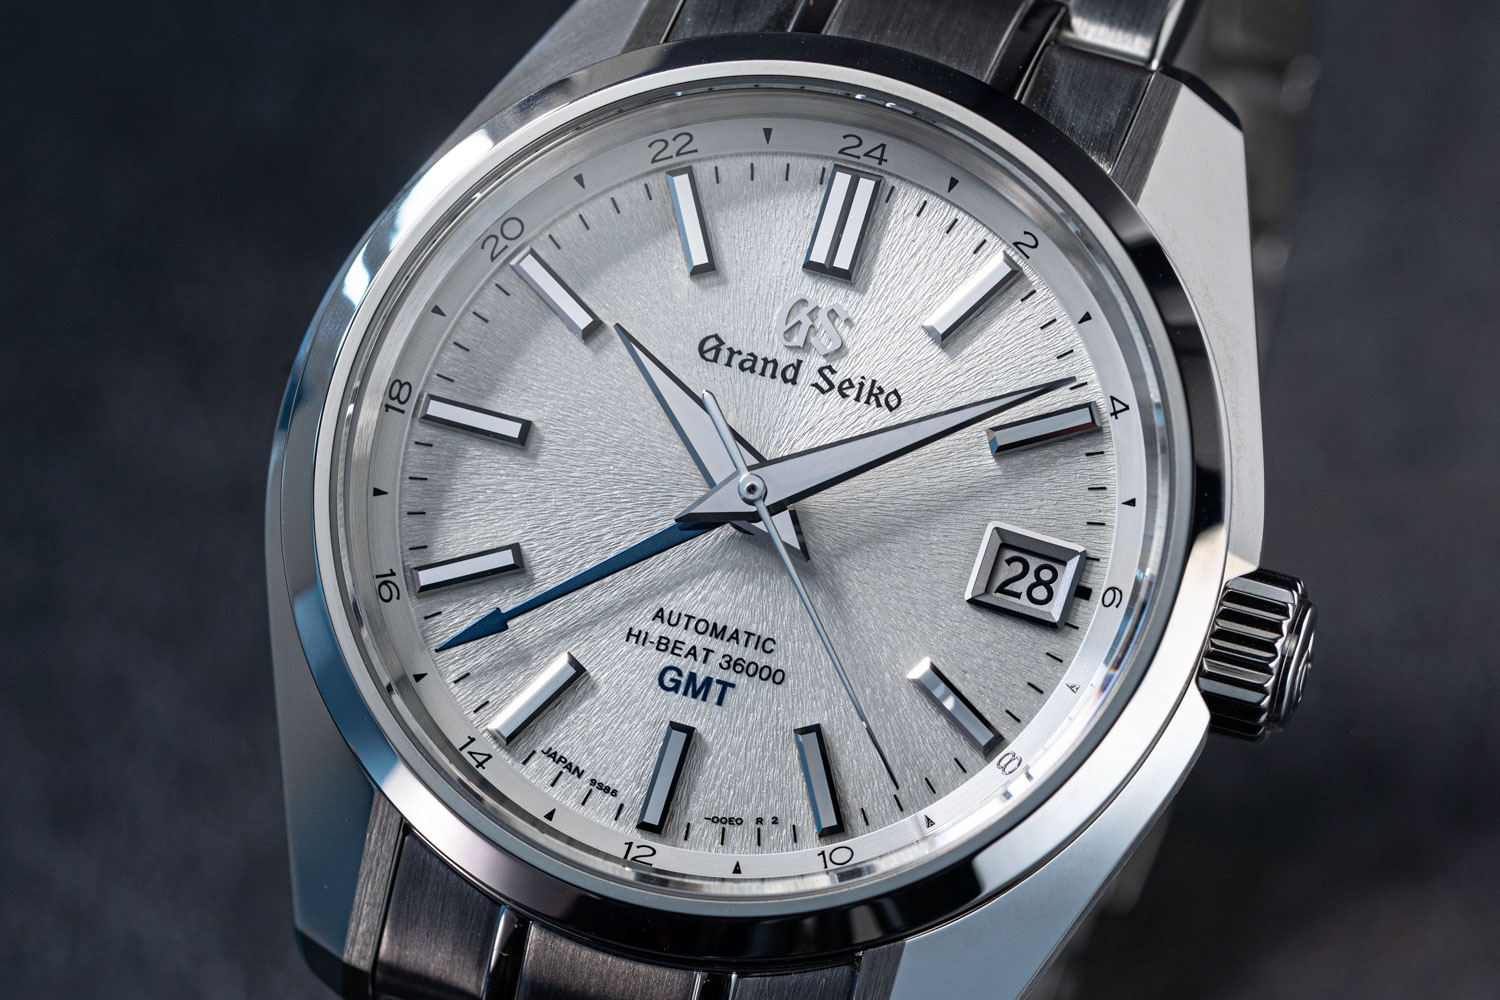 The dial of the Grand Seiko Hi-Beat SBGJ201 feels like monochrome impressionist brush strokes radiating from the center of the dial that as always evokes the winter snow in Nagano Prefecture (©Revolution)